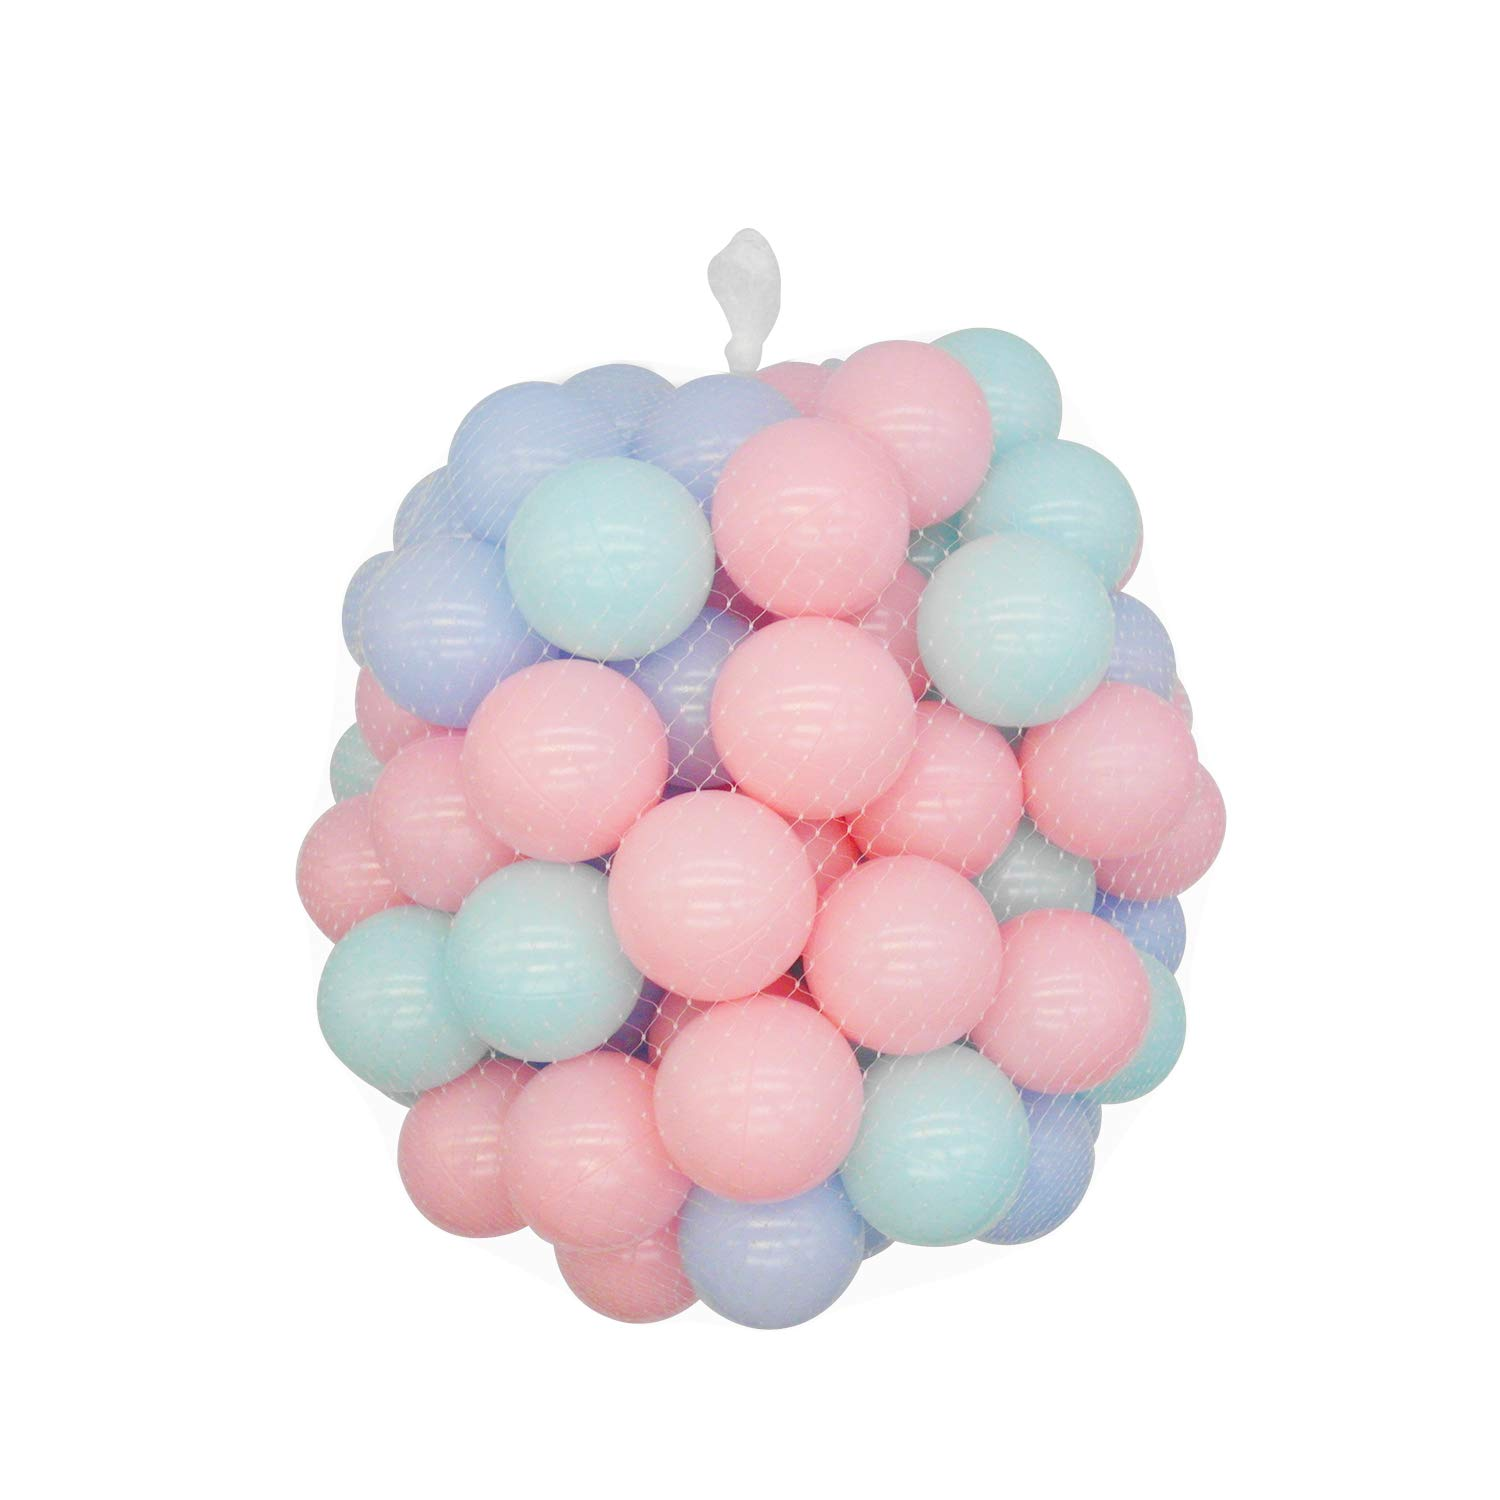 TRENDBOX 100 Macaron Ocean Ball (Ship from USA) for Babies Kids Children Soft Plastic Birthday Parties Events Playground Games Pool